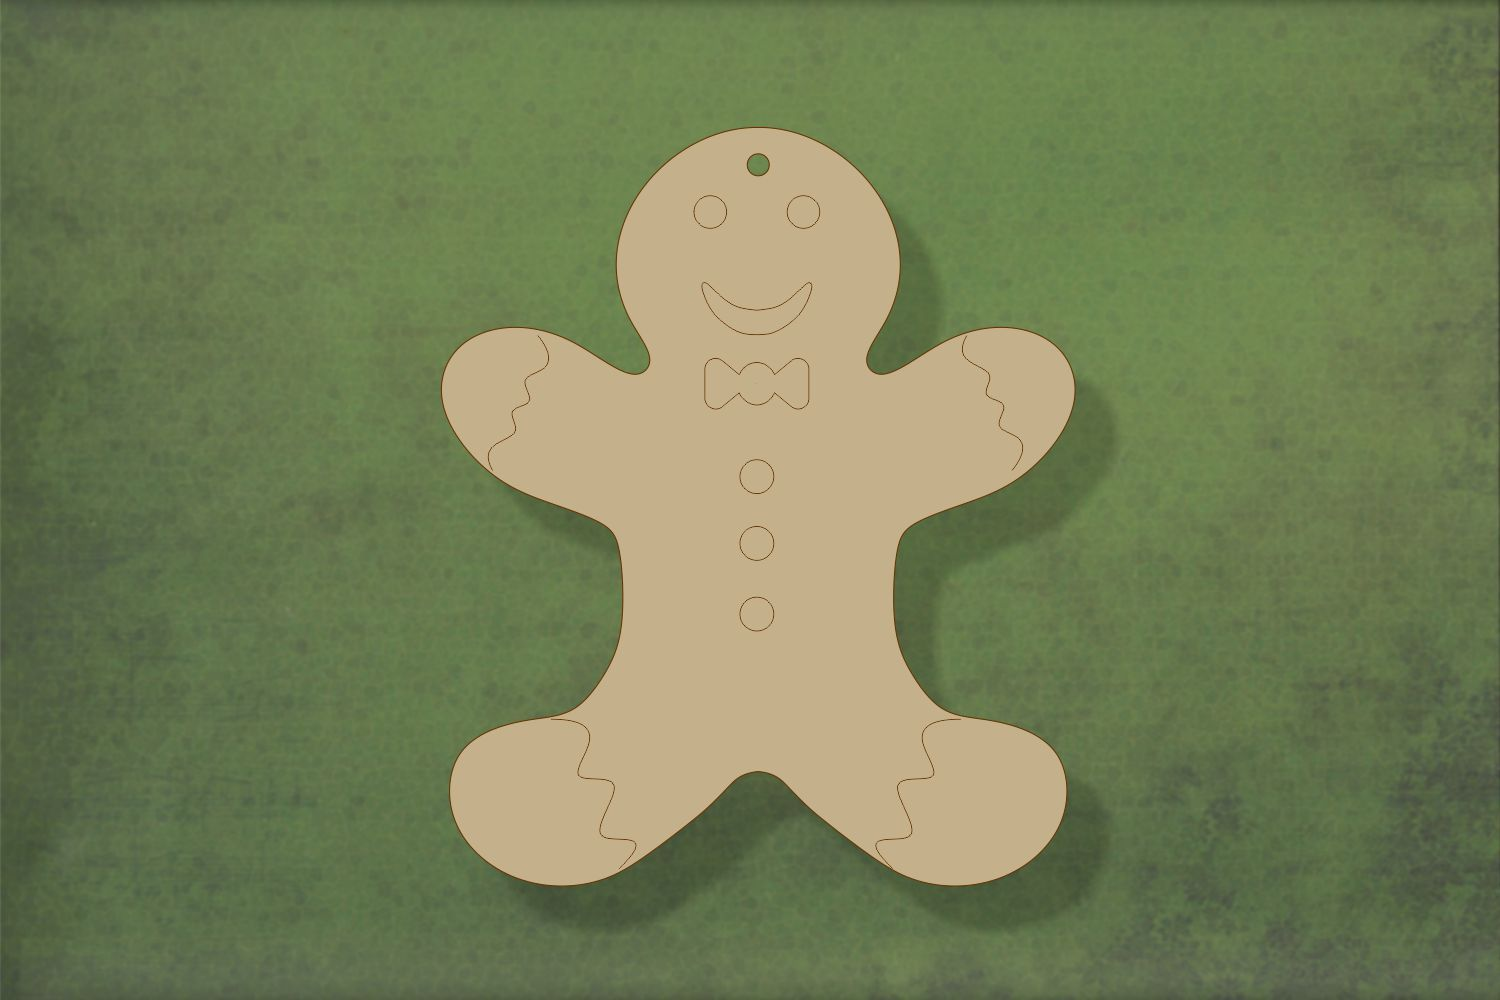 Laser cut, blank wooden Gingerbread person 1 arms up with etched detail shape for craft